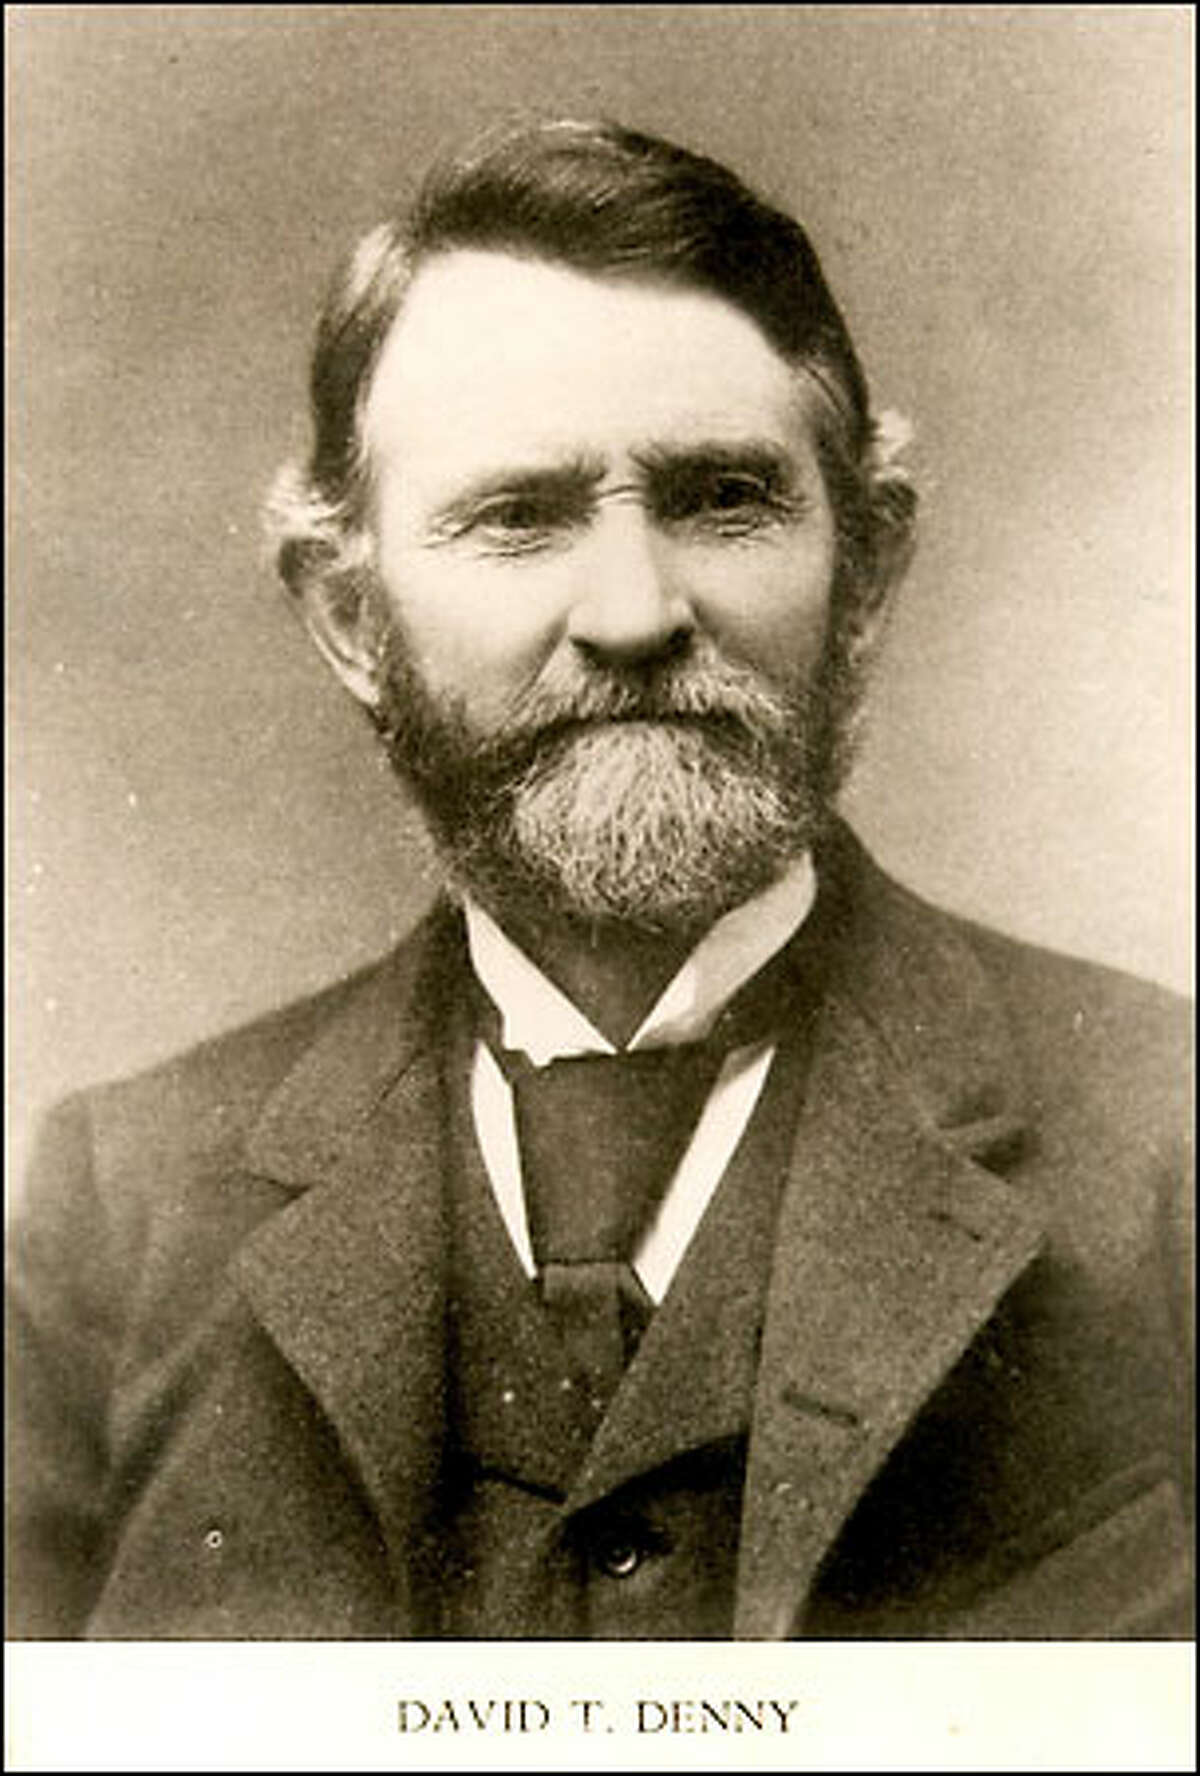 David T. Denny (1832-1903), came to the Pacific Northwest not to farm or cut trees but to build a city. David was the first member of the Denny party to arrive in Seattle in September 1851.